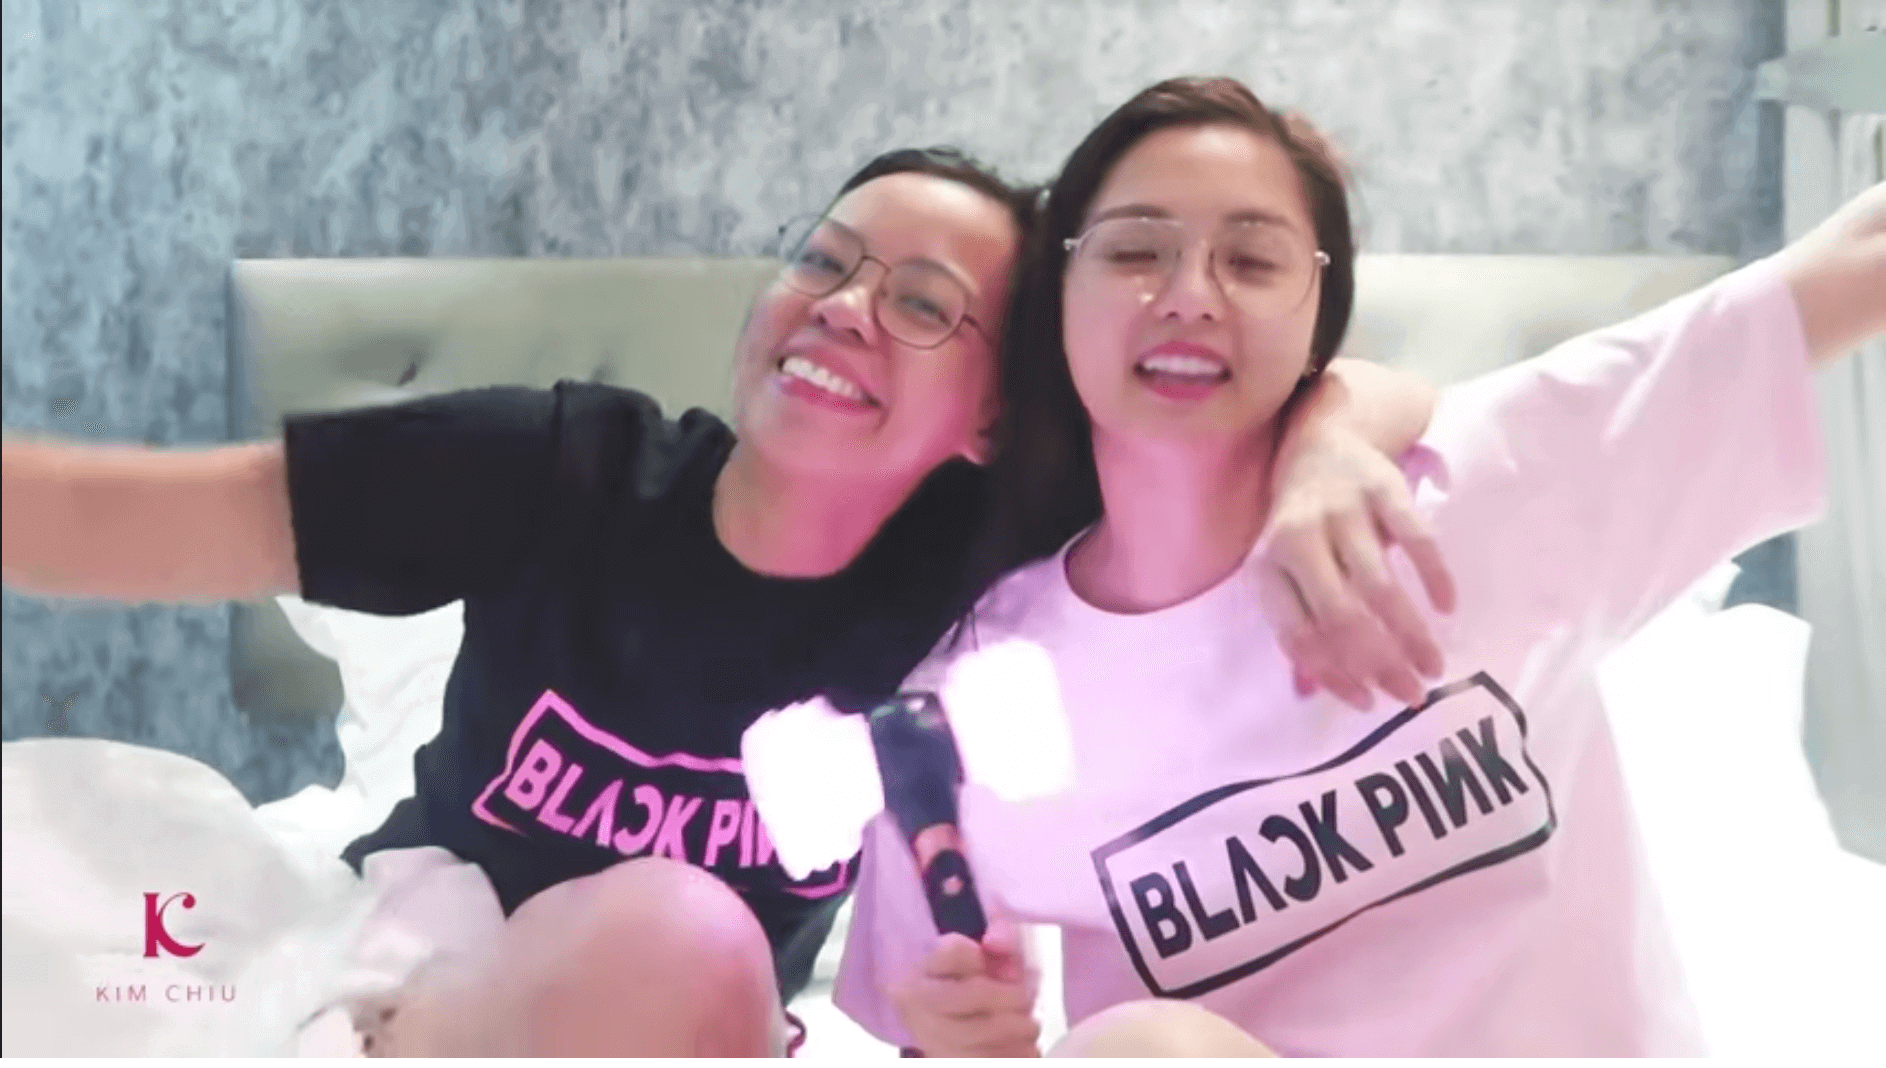 Kim Chiu Fangirls Over BLACKPINK In Her New Vlog